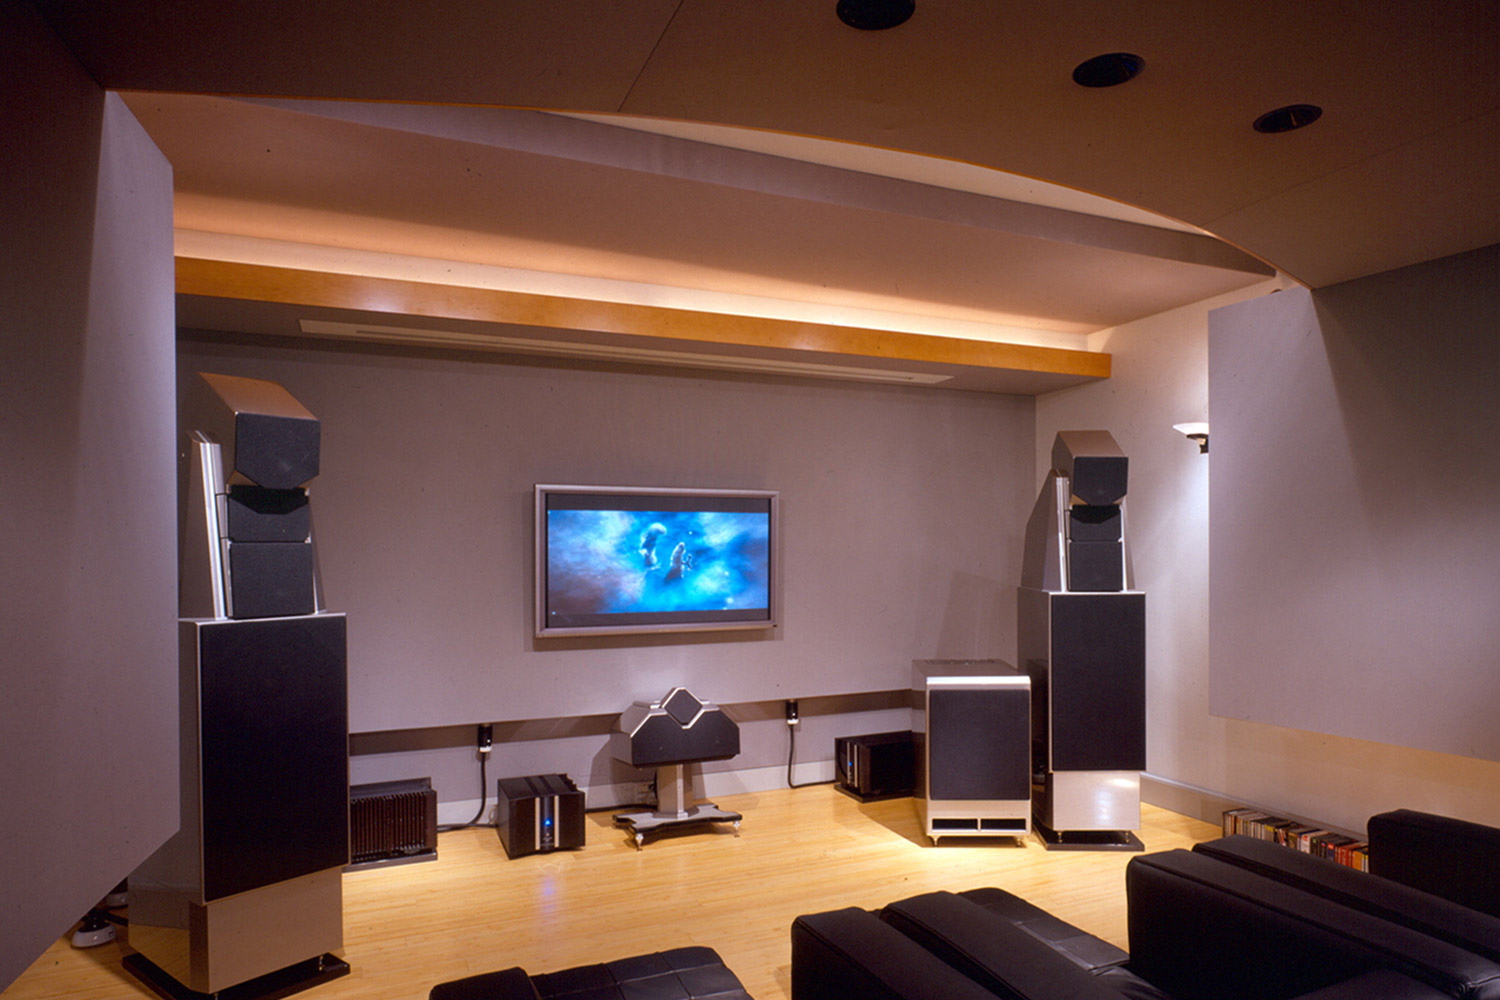 Alan may listening room home theater wsdg for The designer rooms